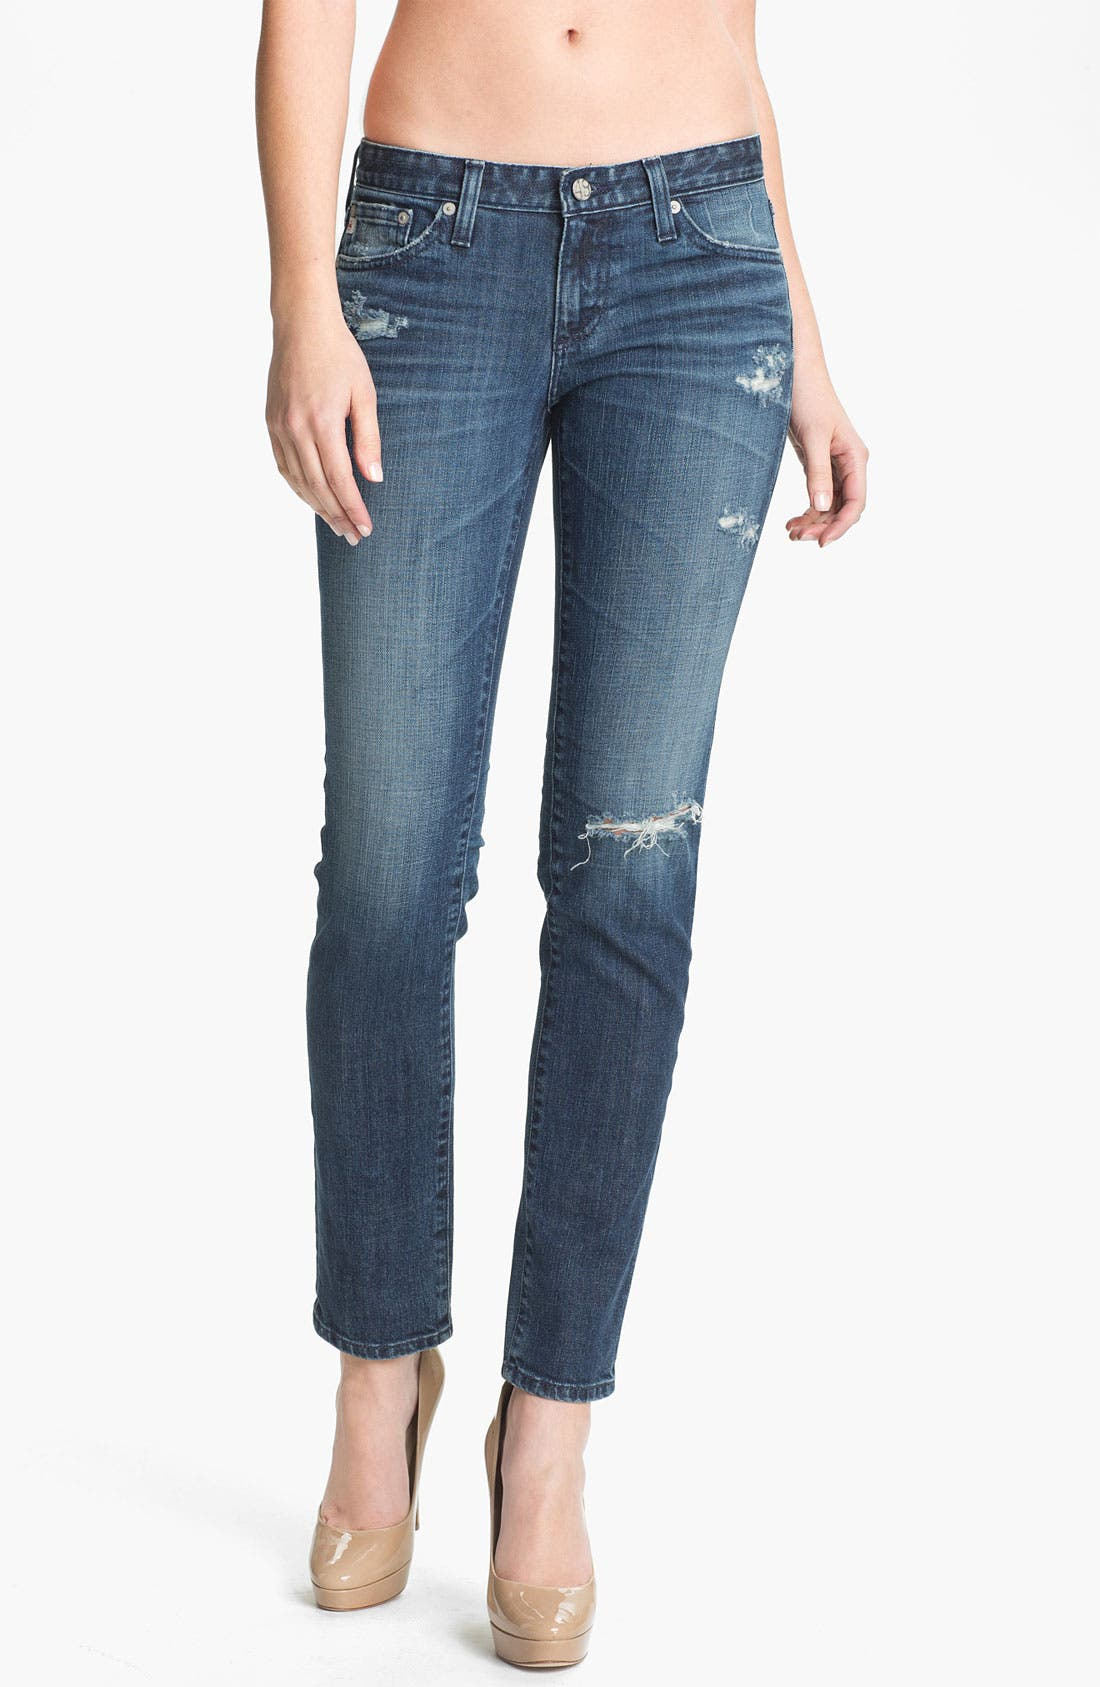 Main Image - AG Jeans 'The Stilt' Cigarette Leg Stretch Jeans (7 Year Destroy)